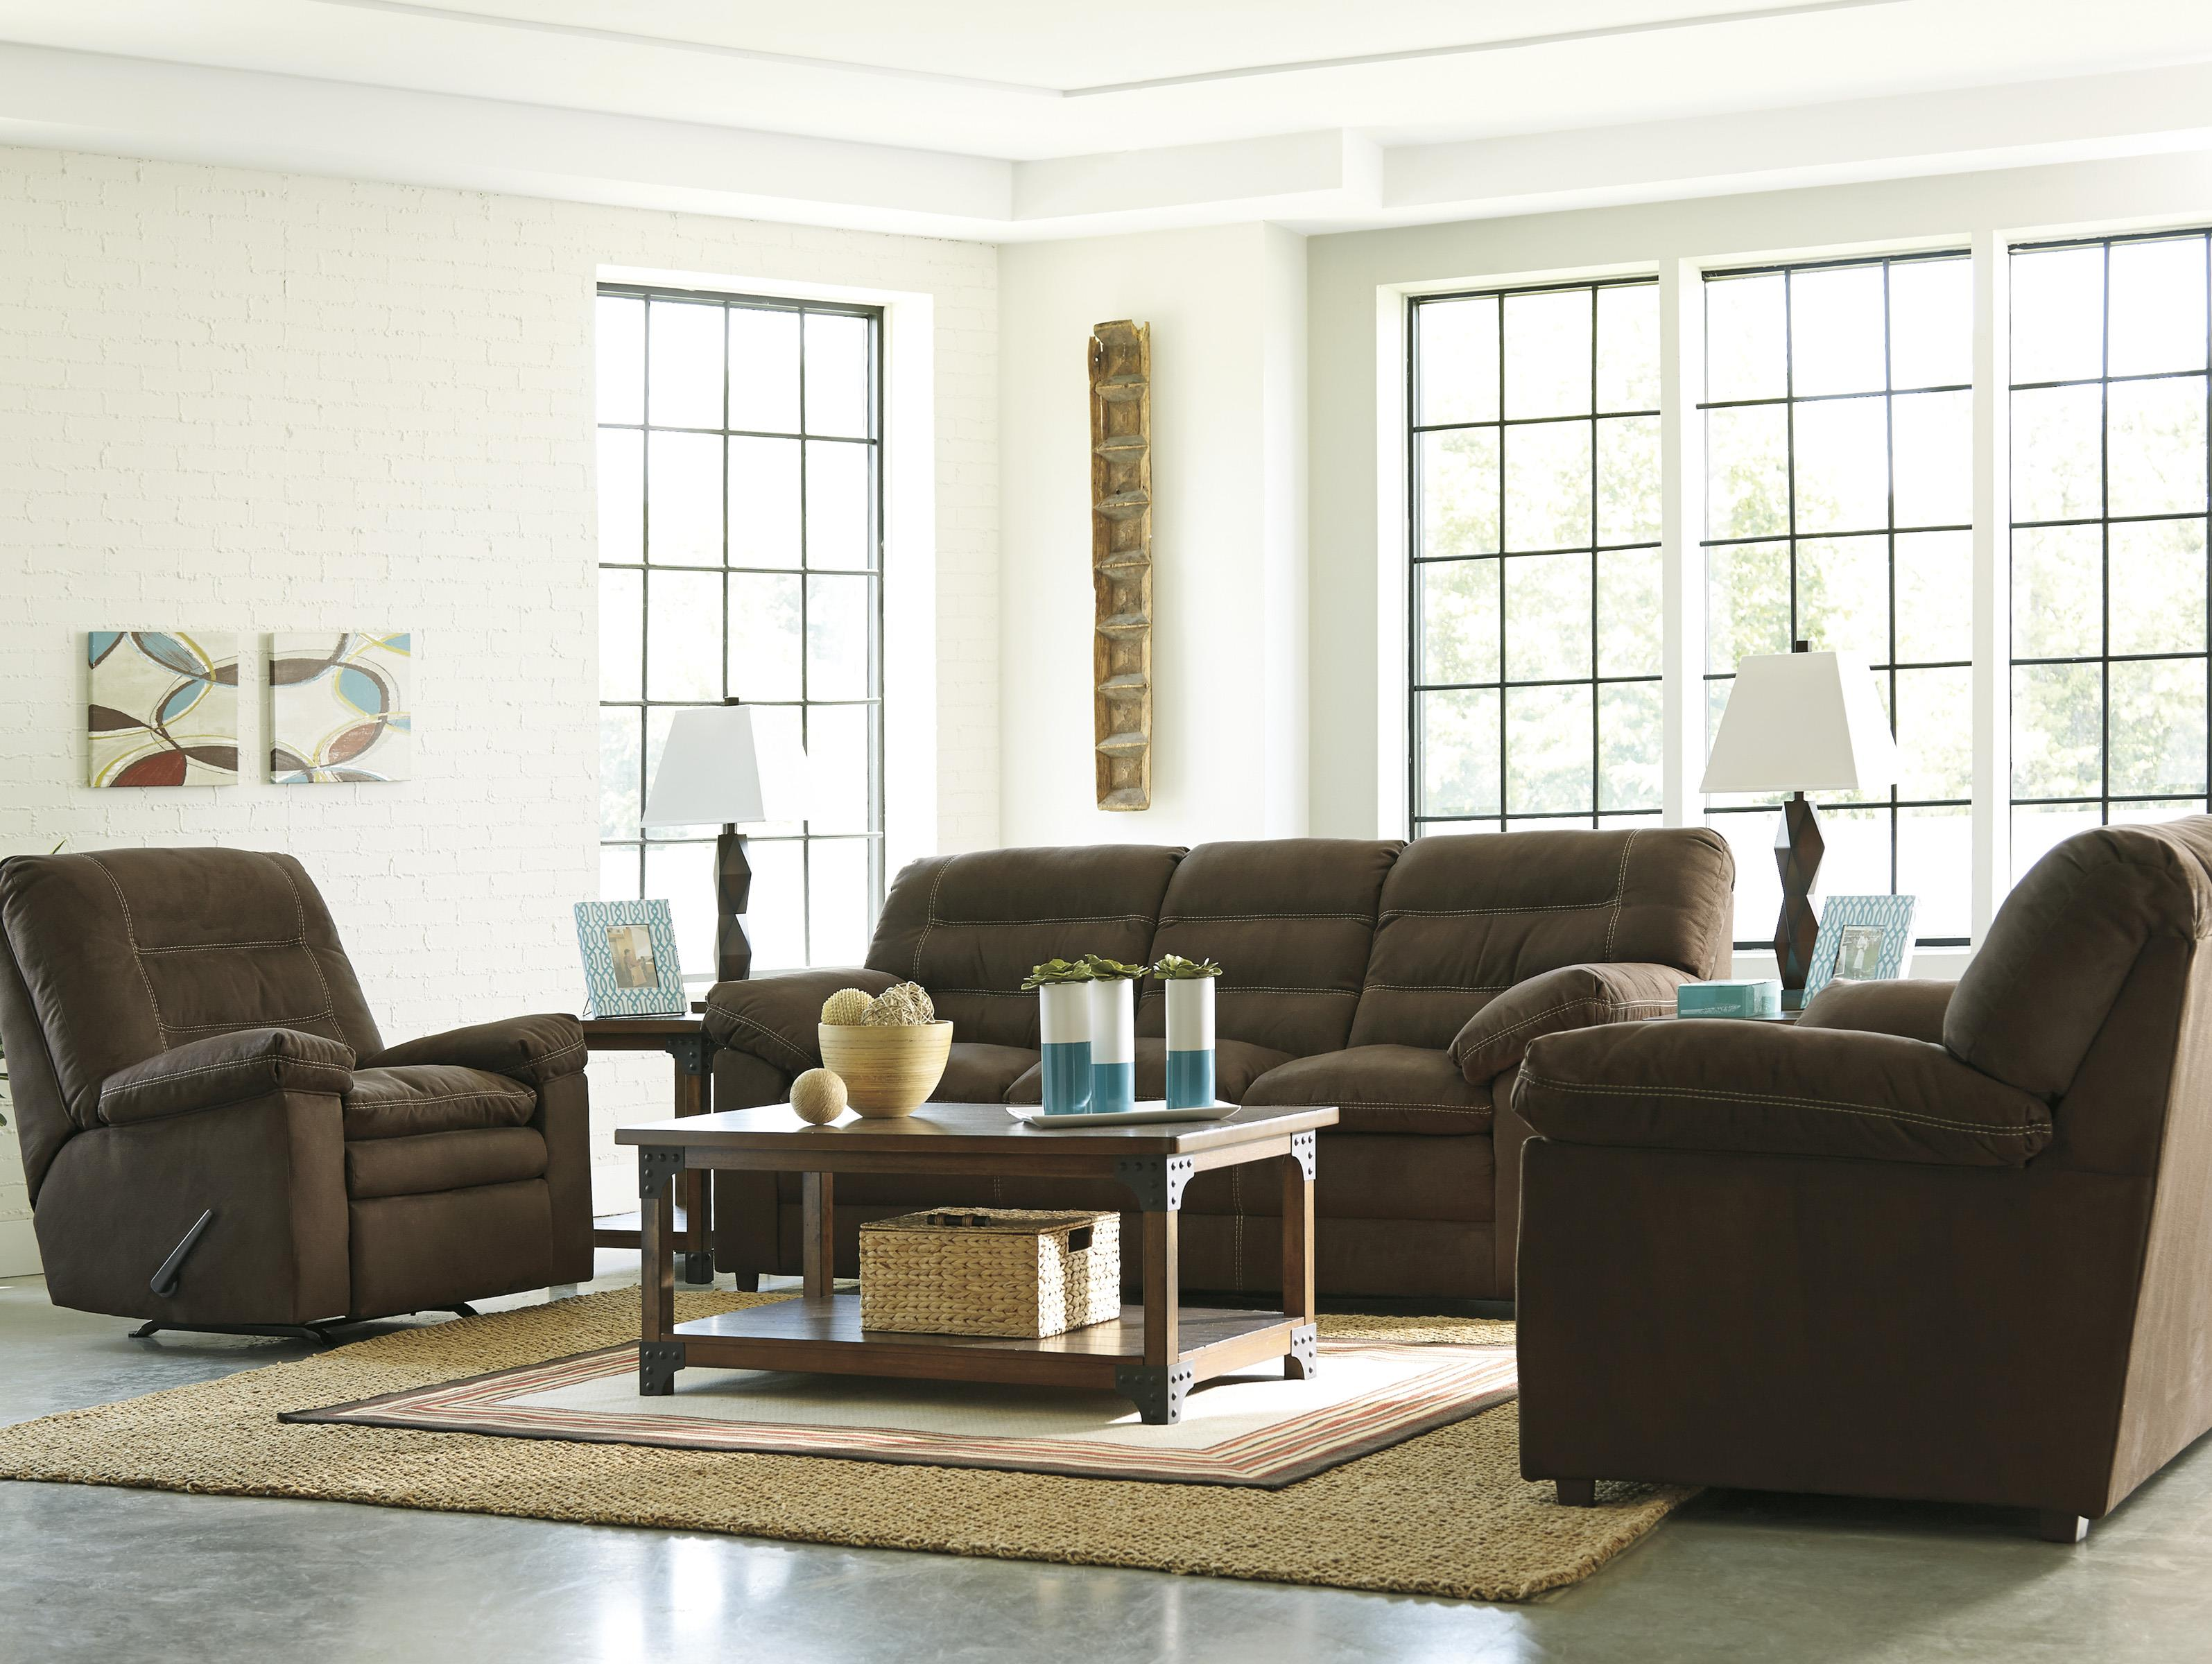 Benchcraft by Ashley Talut Stationary Living Room Group Royal